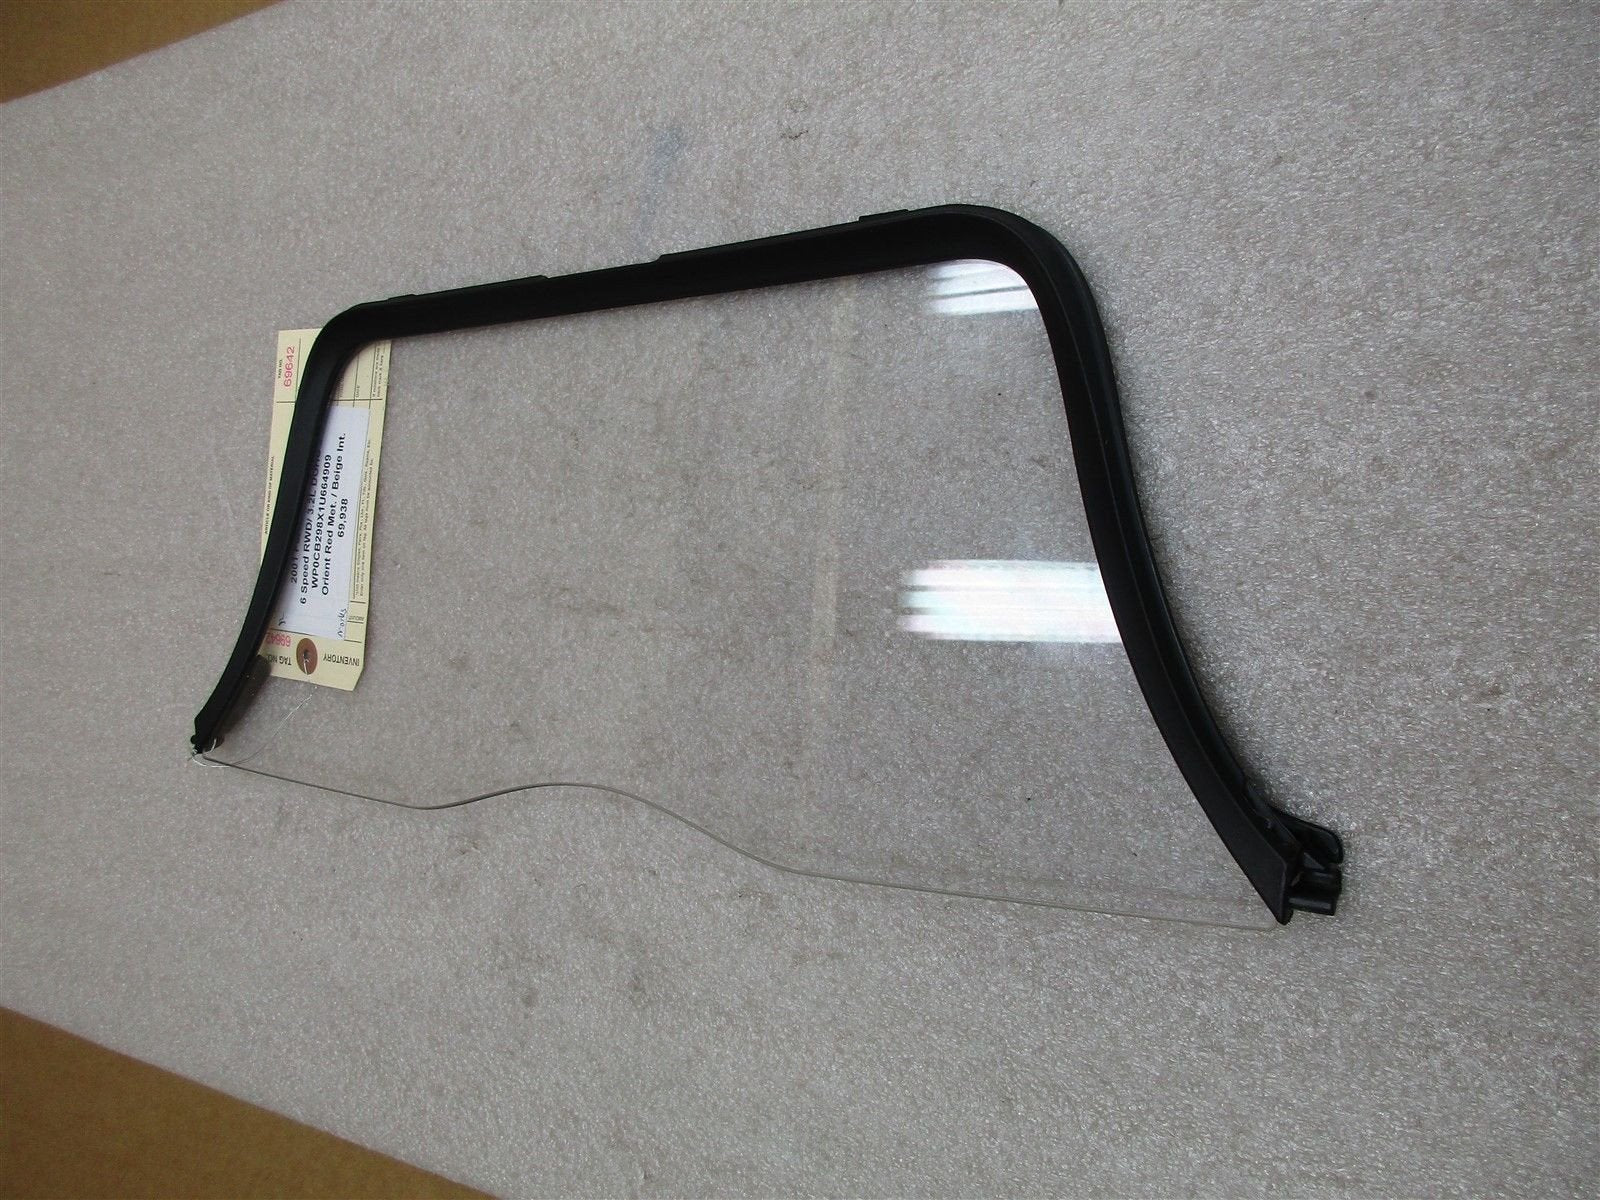 01 Boxster S RWD Porsche 986 Black ROLL BAR + WINDOW 69,938